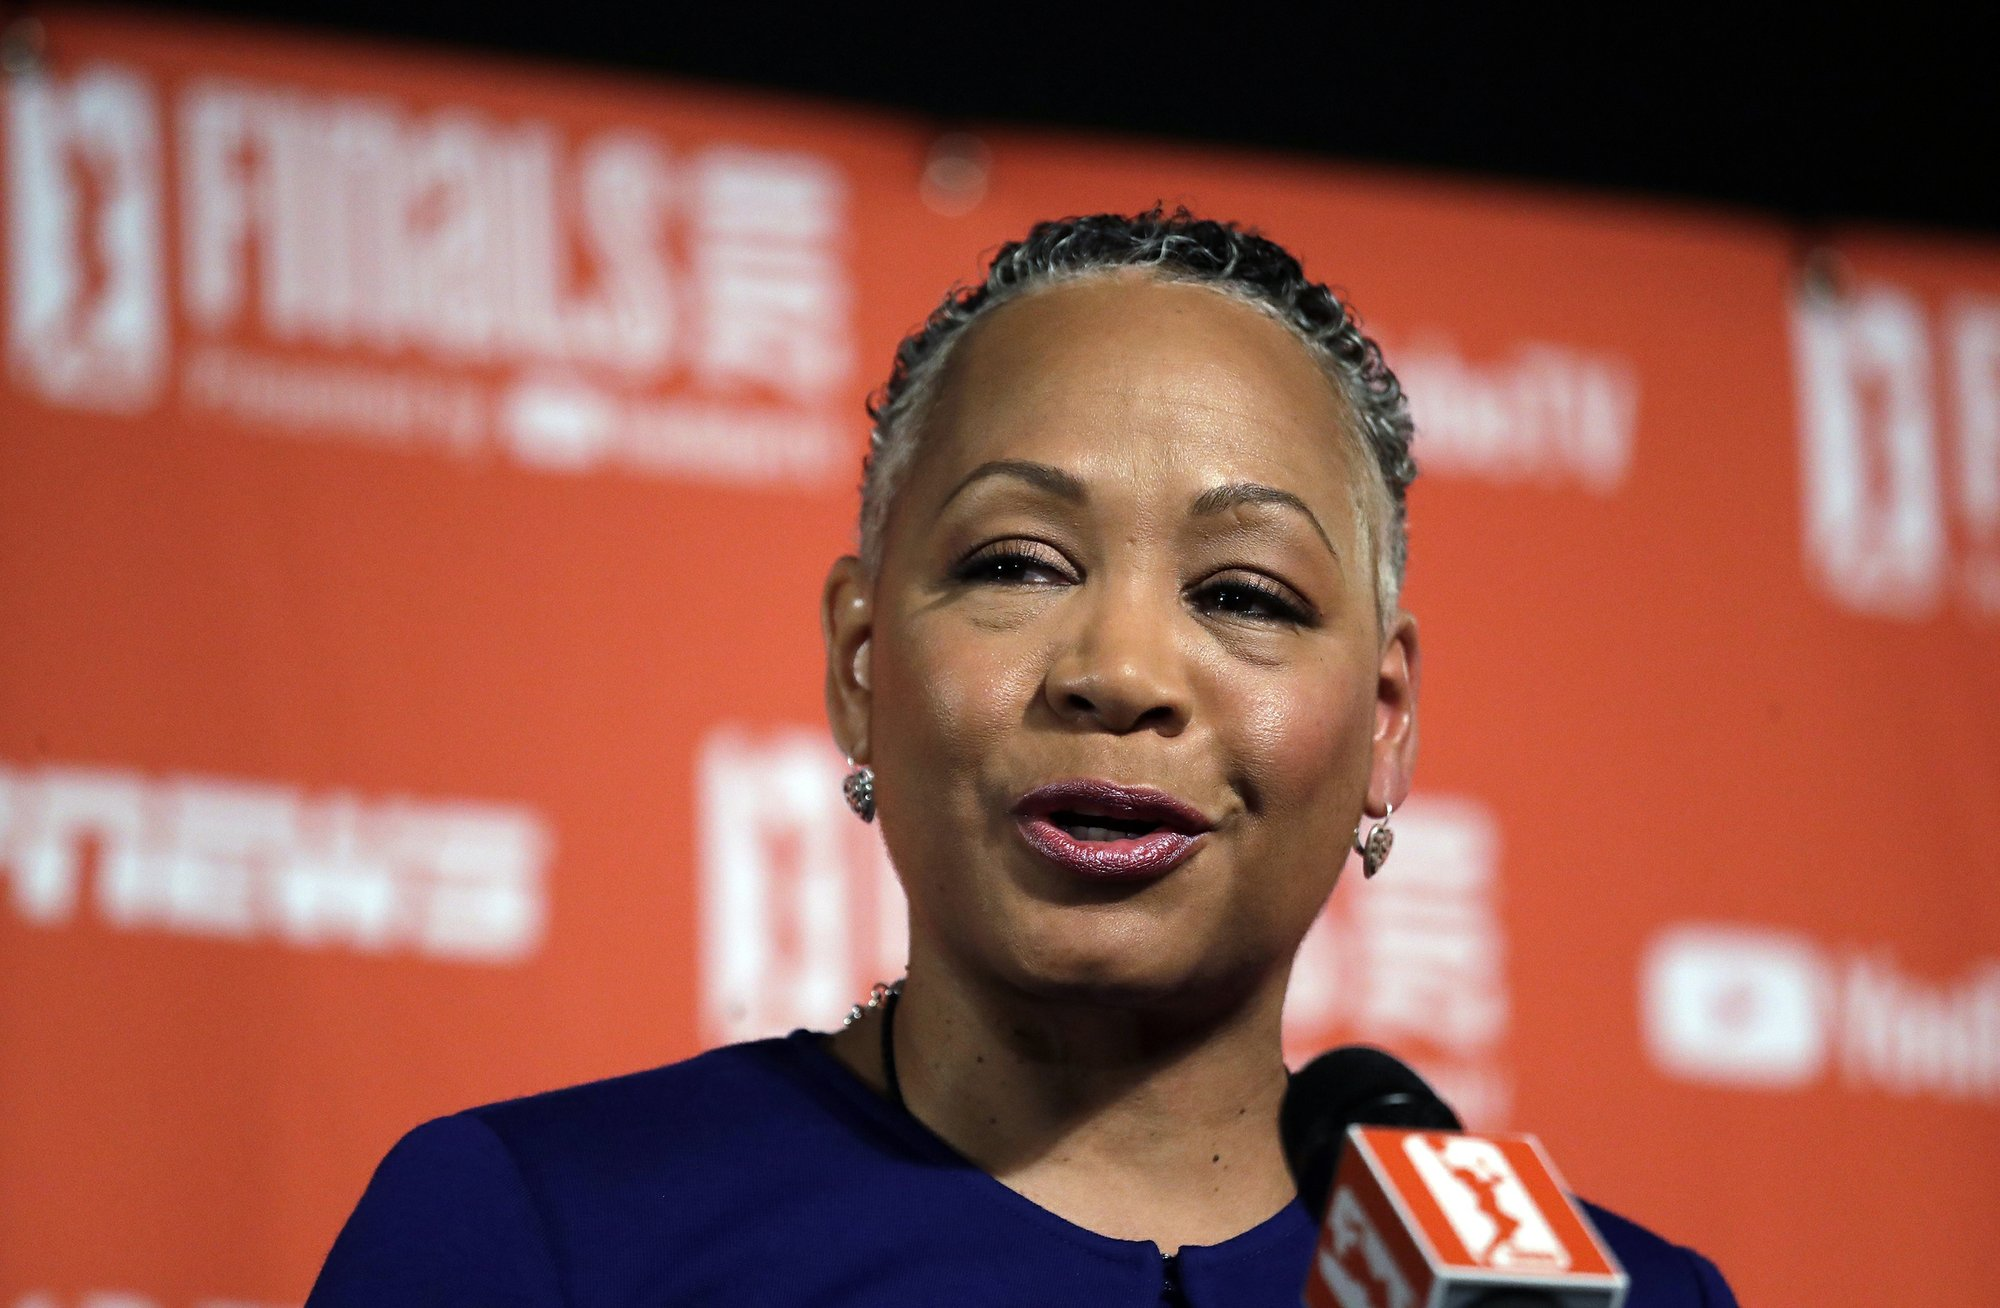 Lisa Borders steps down as head of Time's Up organization